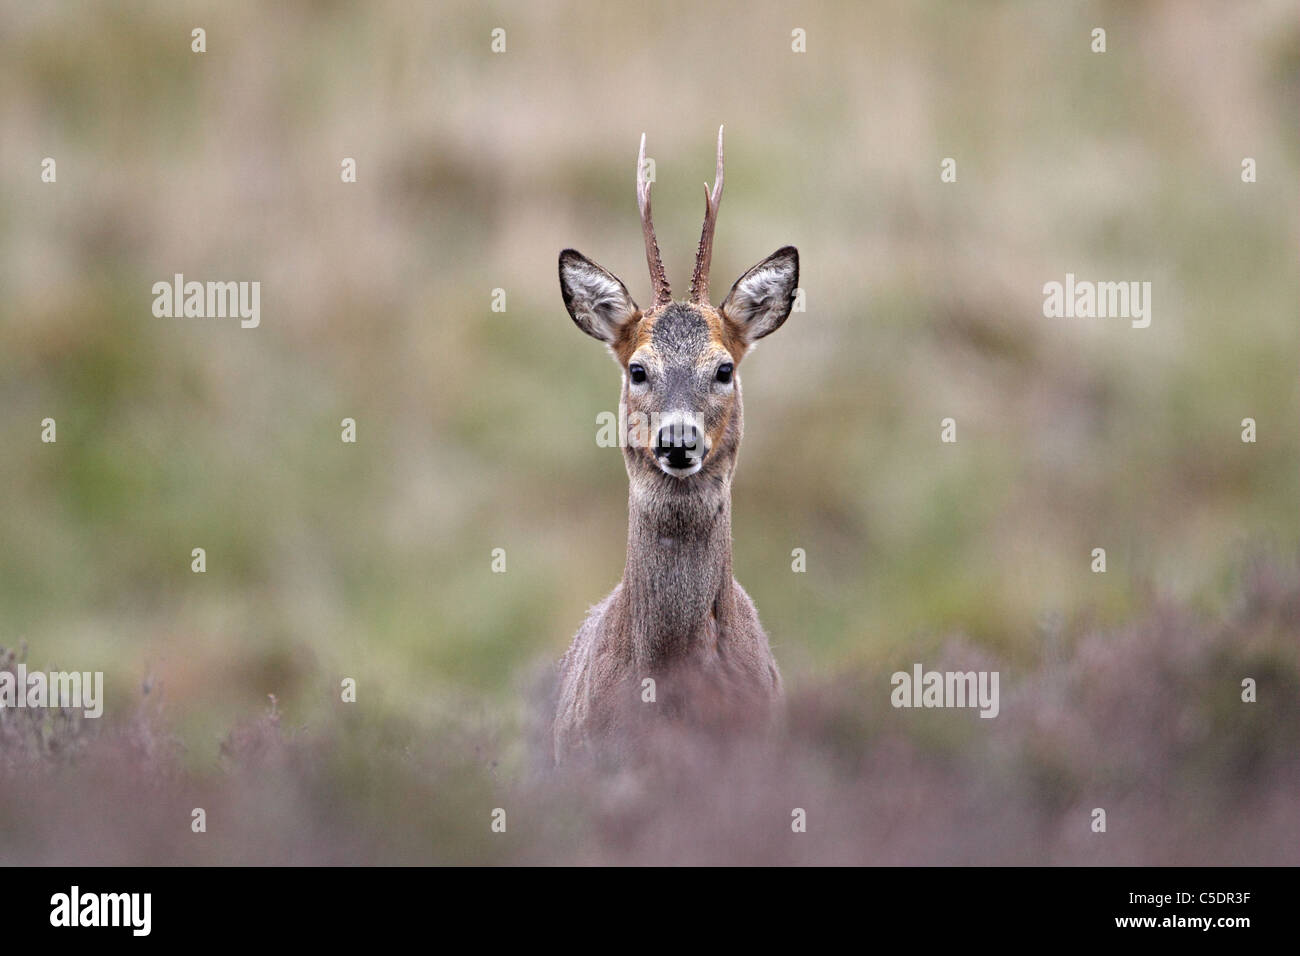 Roe Deer (Roebuck), Capreolus capreolus, staring at photographer - Stock Image